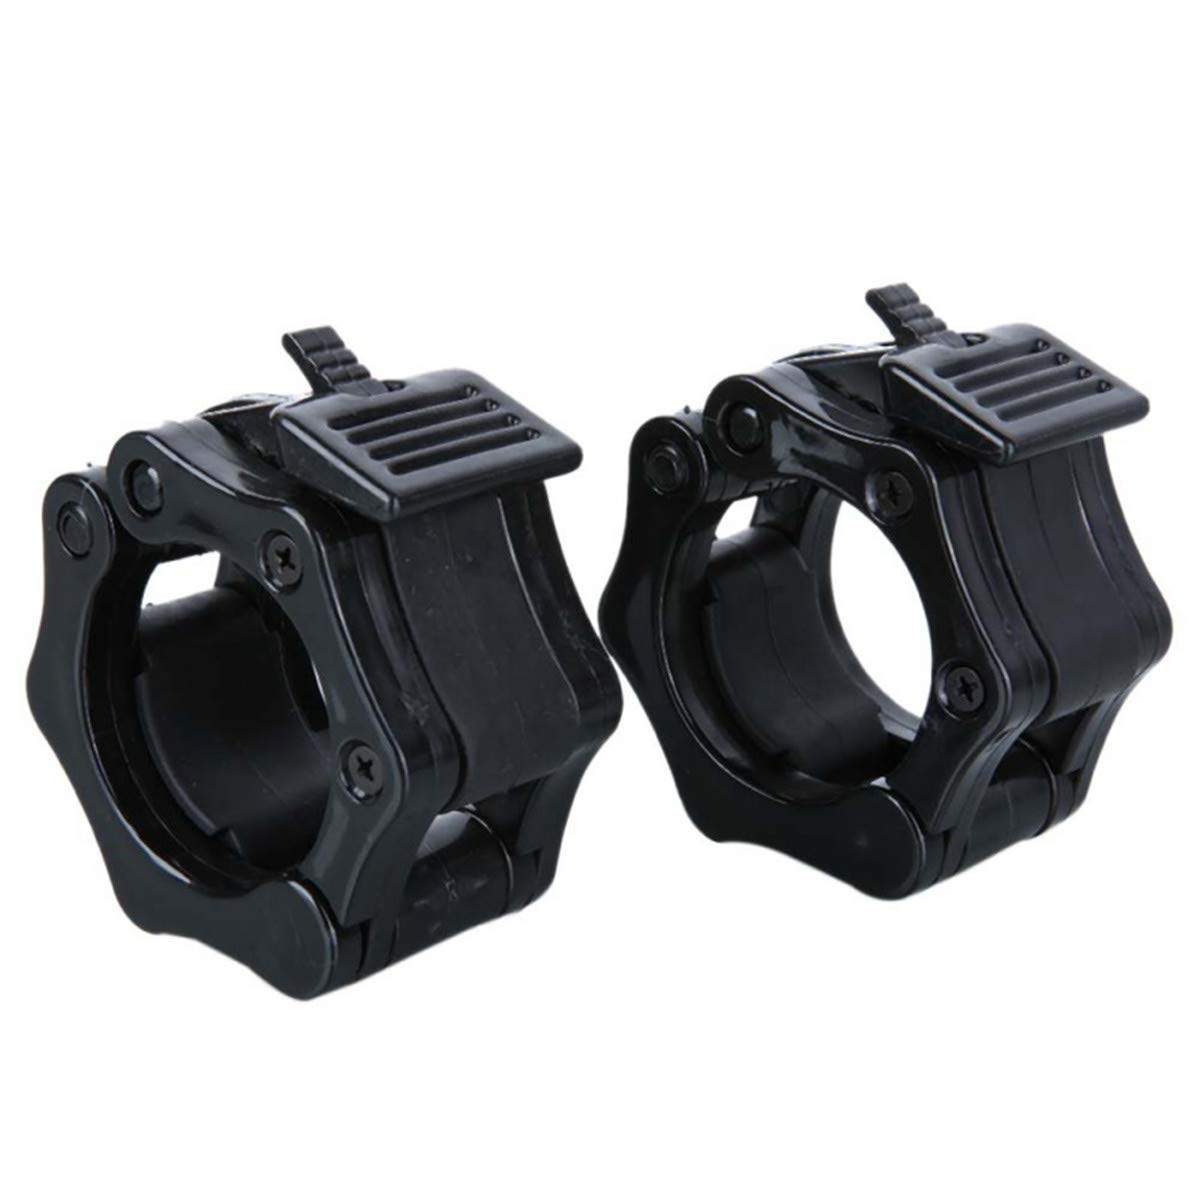 Queenbox 2pcs Barbell Clamp Collar Clips Clamp Gym Training 25mm, Black